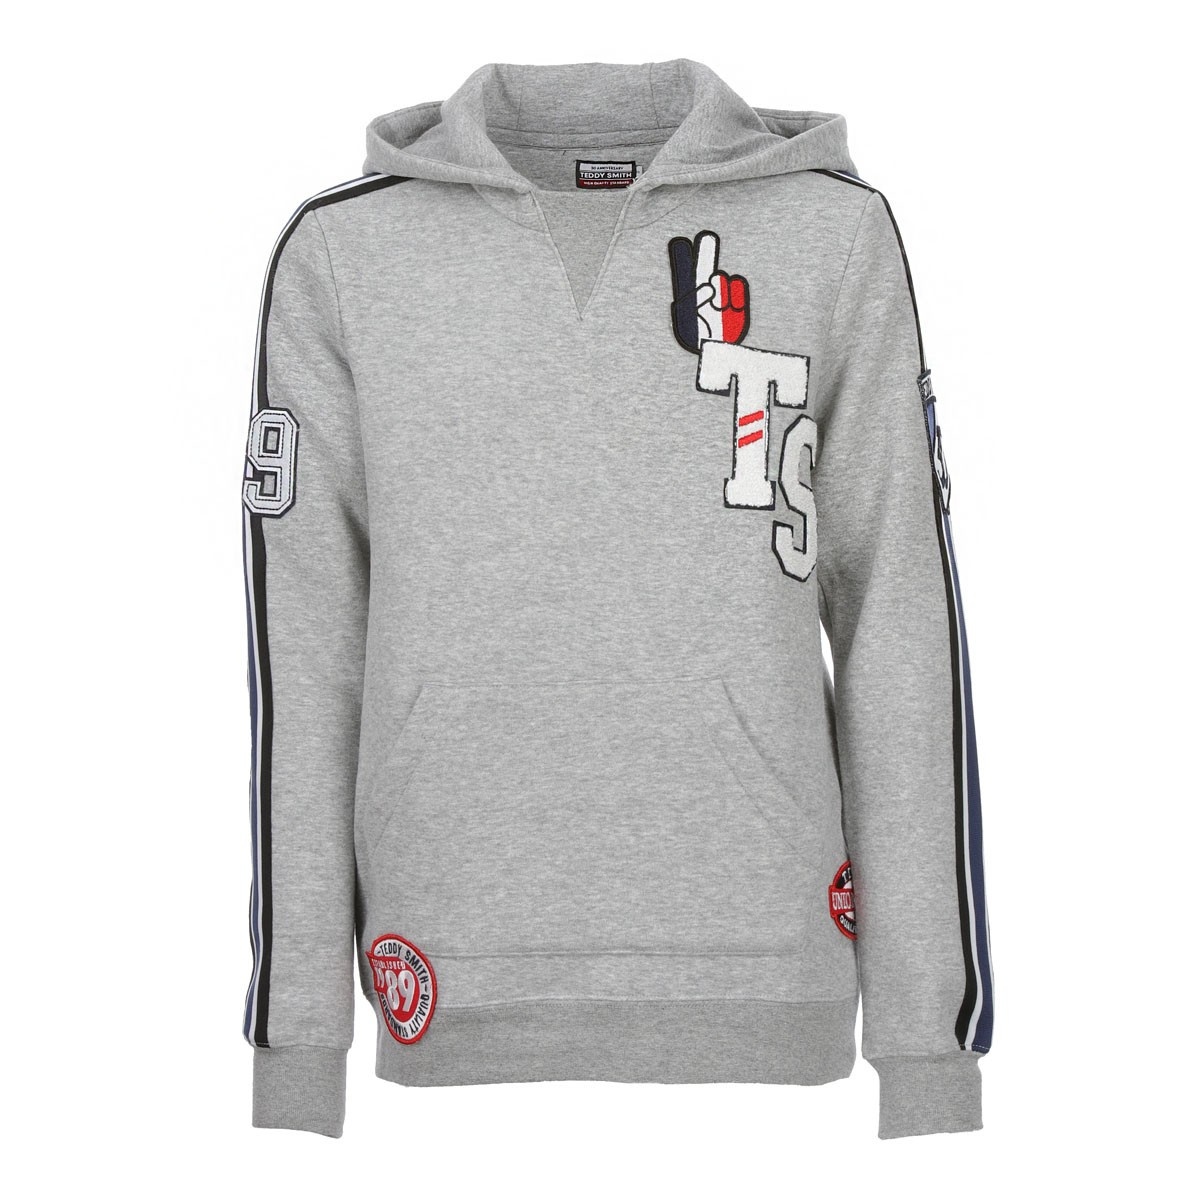 TEDDY SMITH Sweat à capuche garçon gris